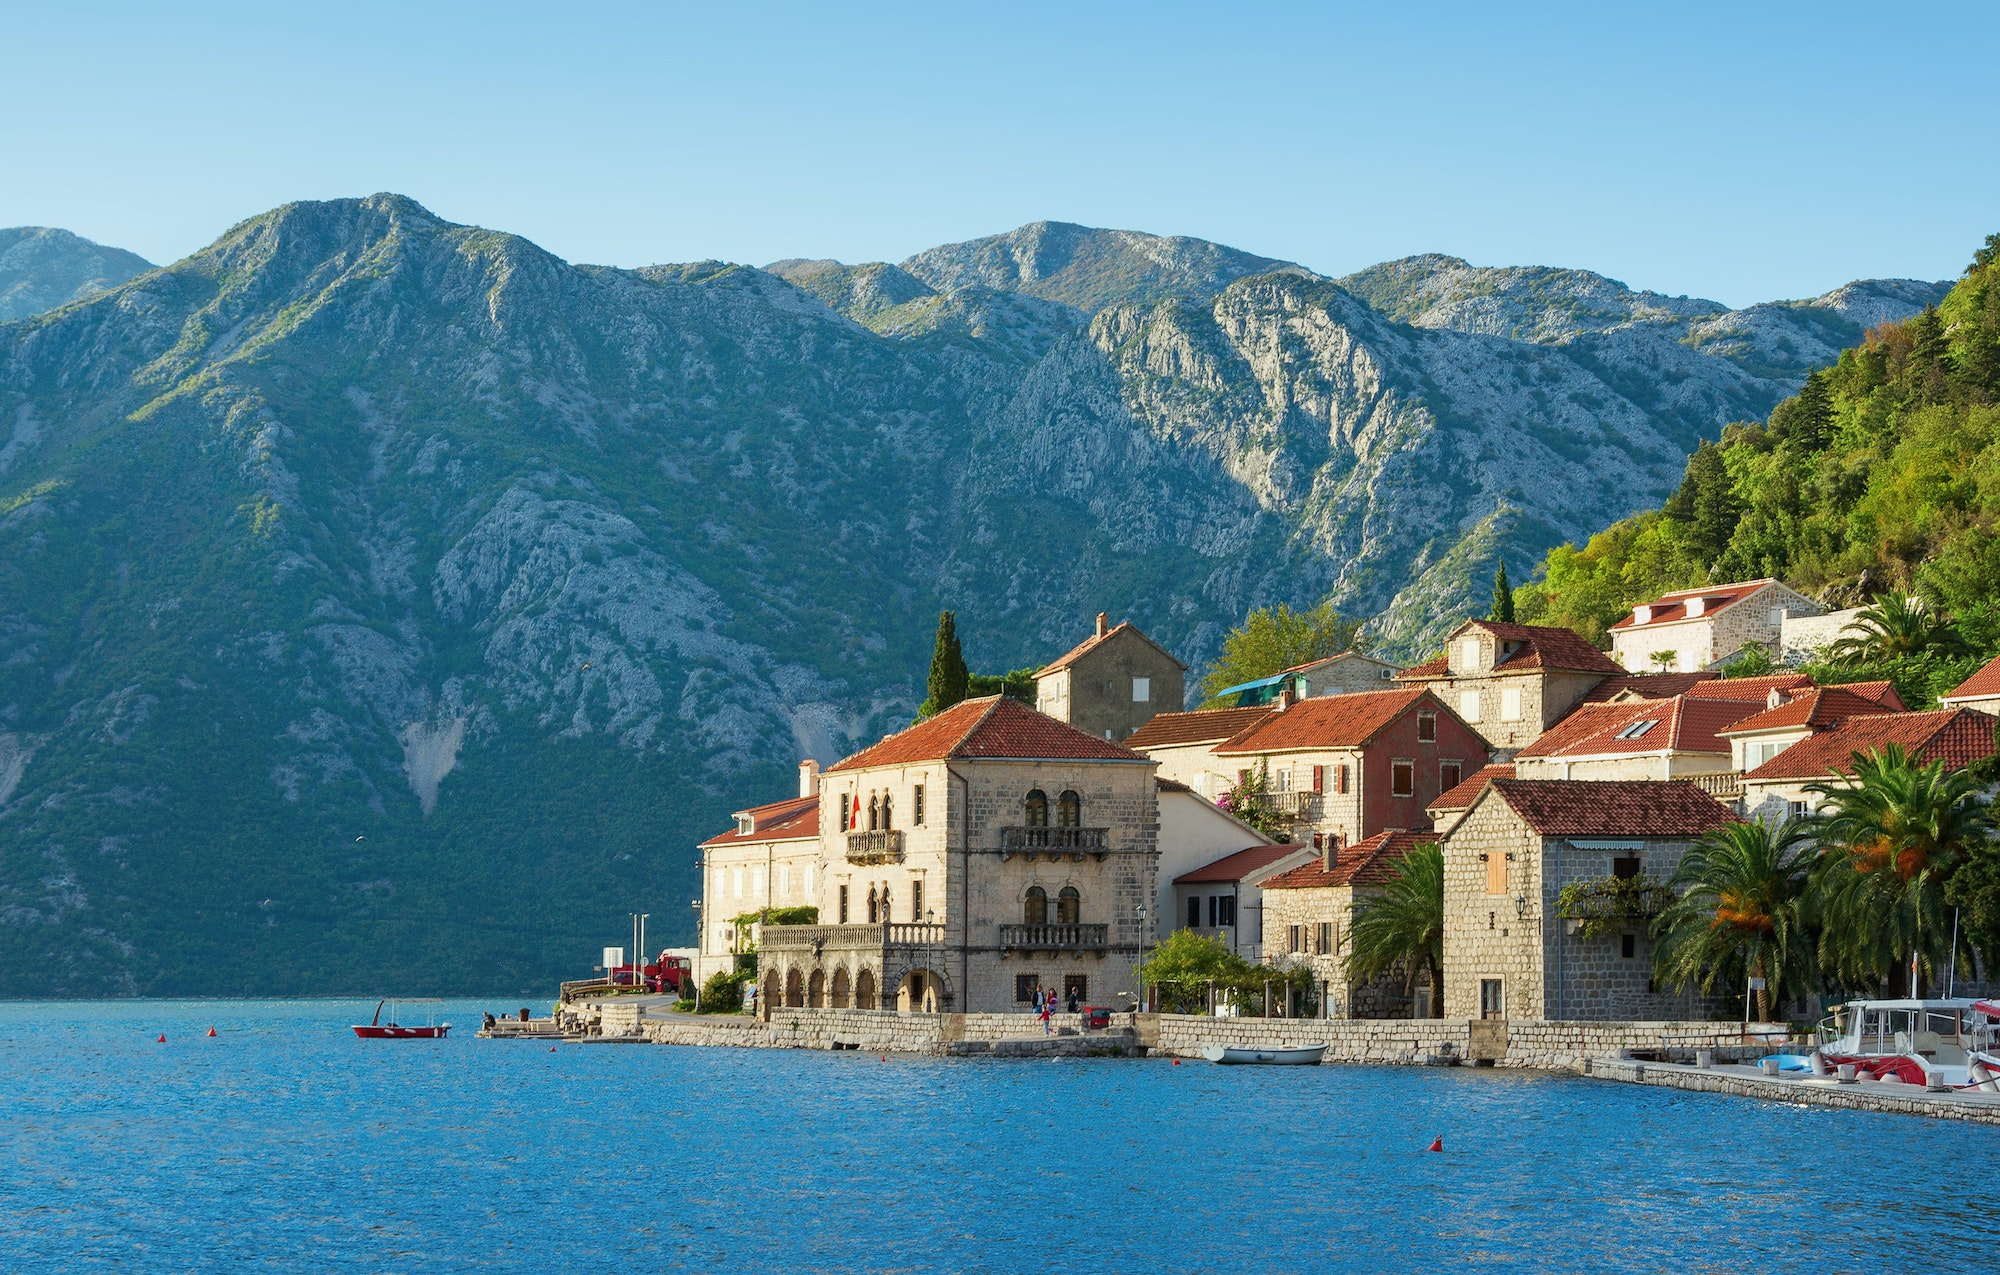 Perast is a town on the Bay of Kotor just north of the Old City of Kotor in Montenegro.